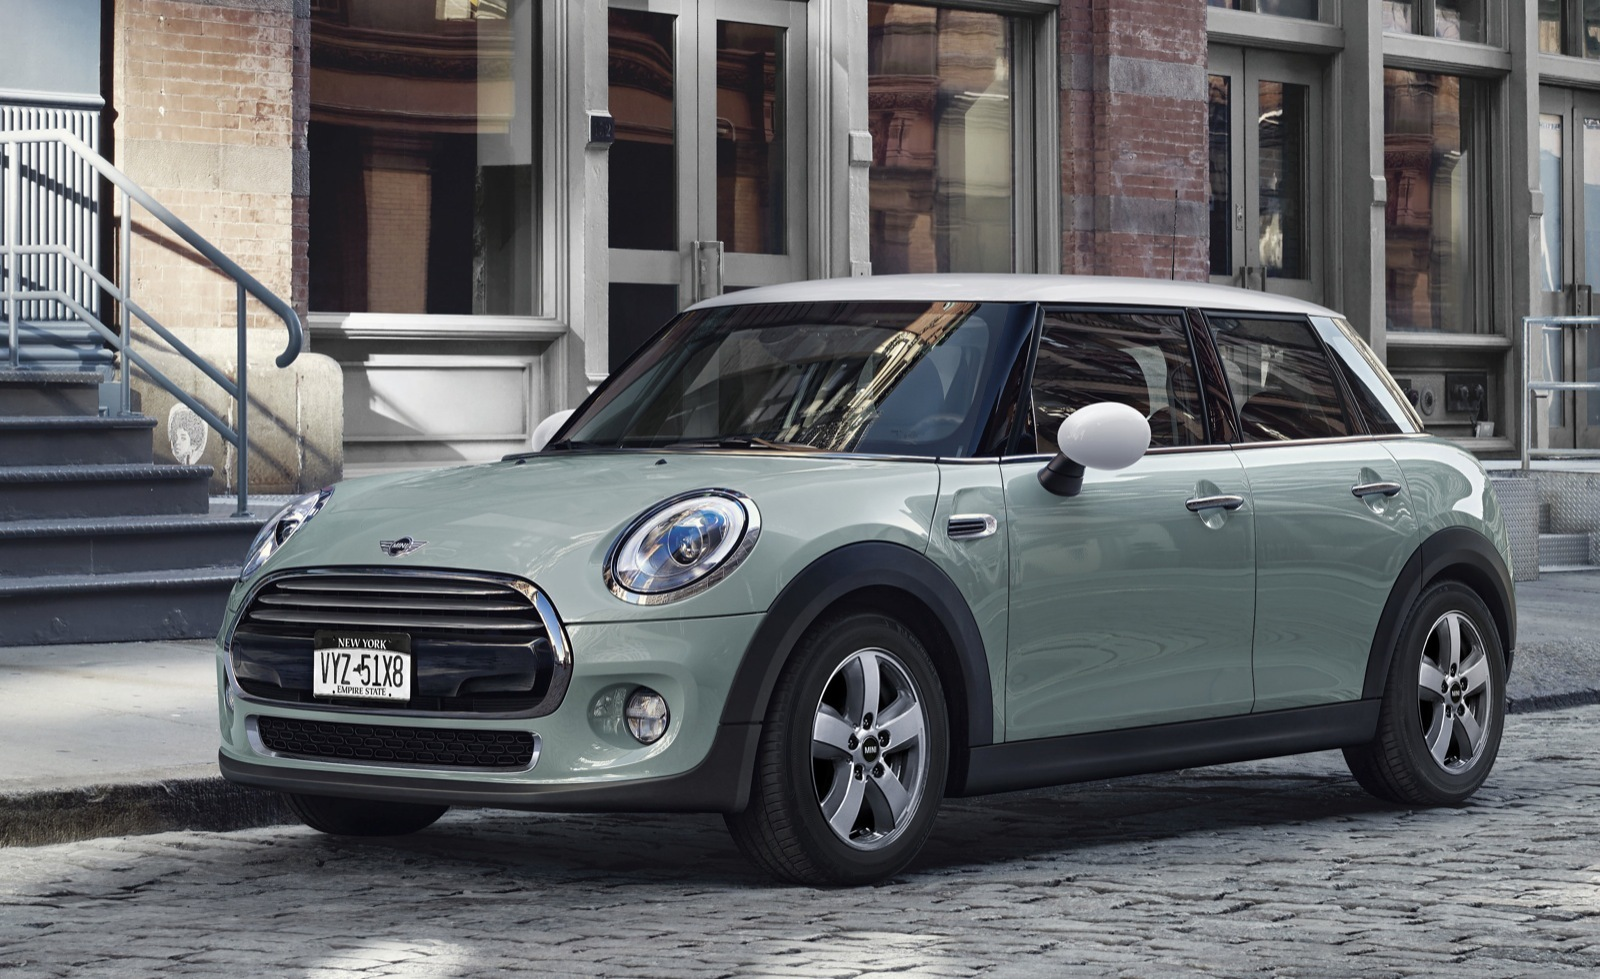 Mini Cooper Ice Blue >> MINI COOPER ICE BLUE - Autoblog 日本版